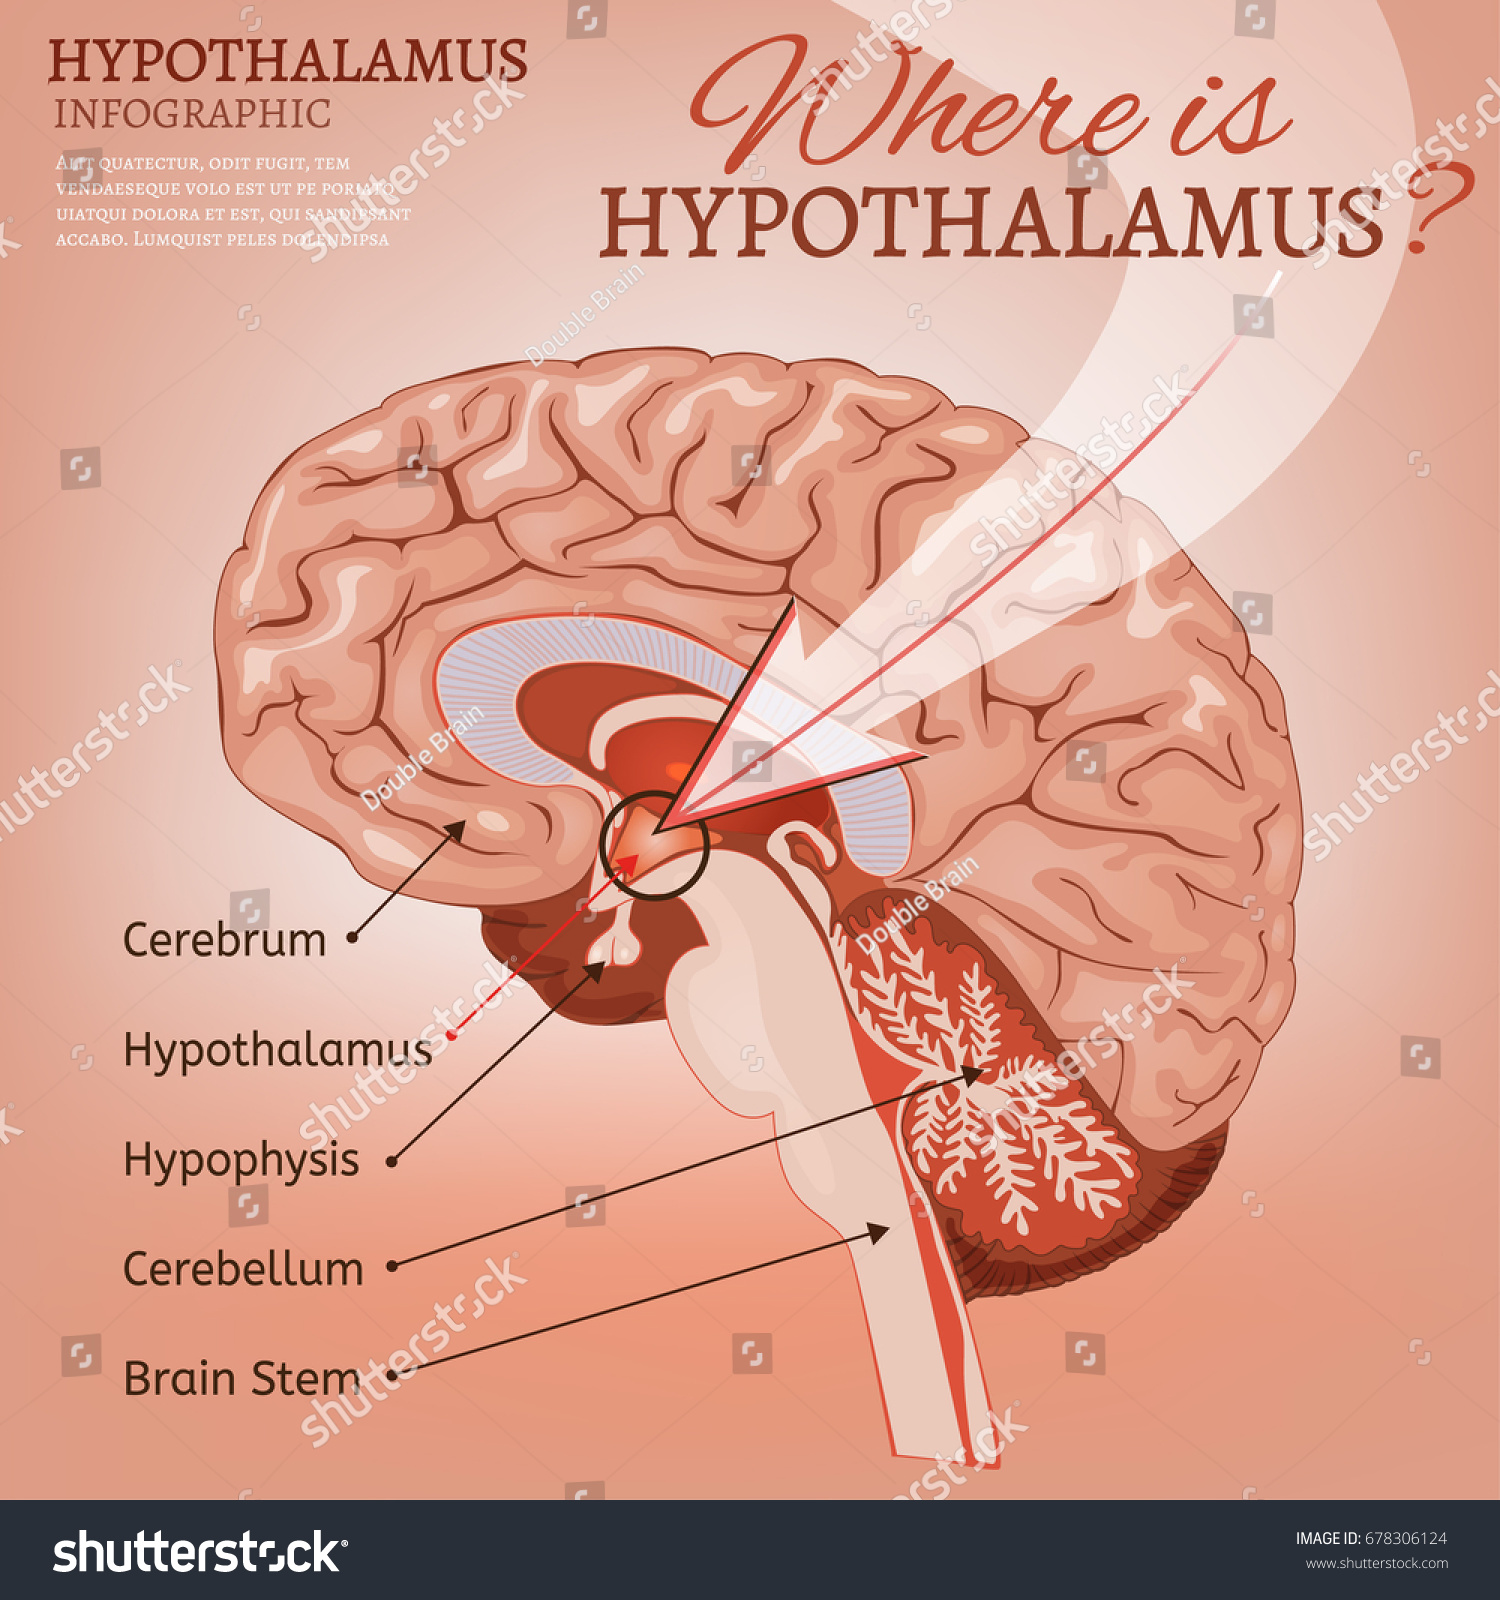 Hypothalamus Infographic Image Detailed Anatomy Human Stock Vector ...